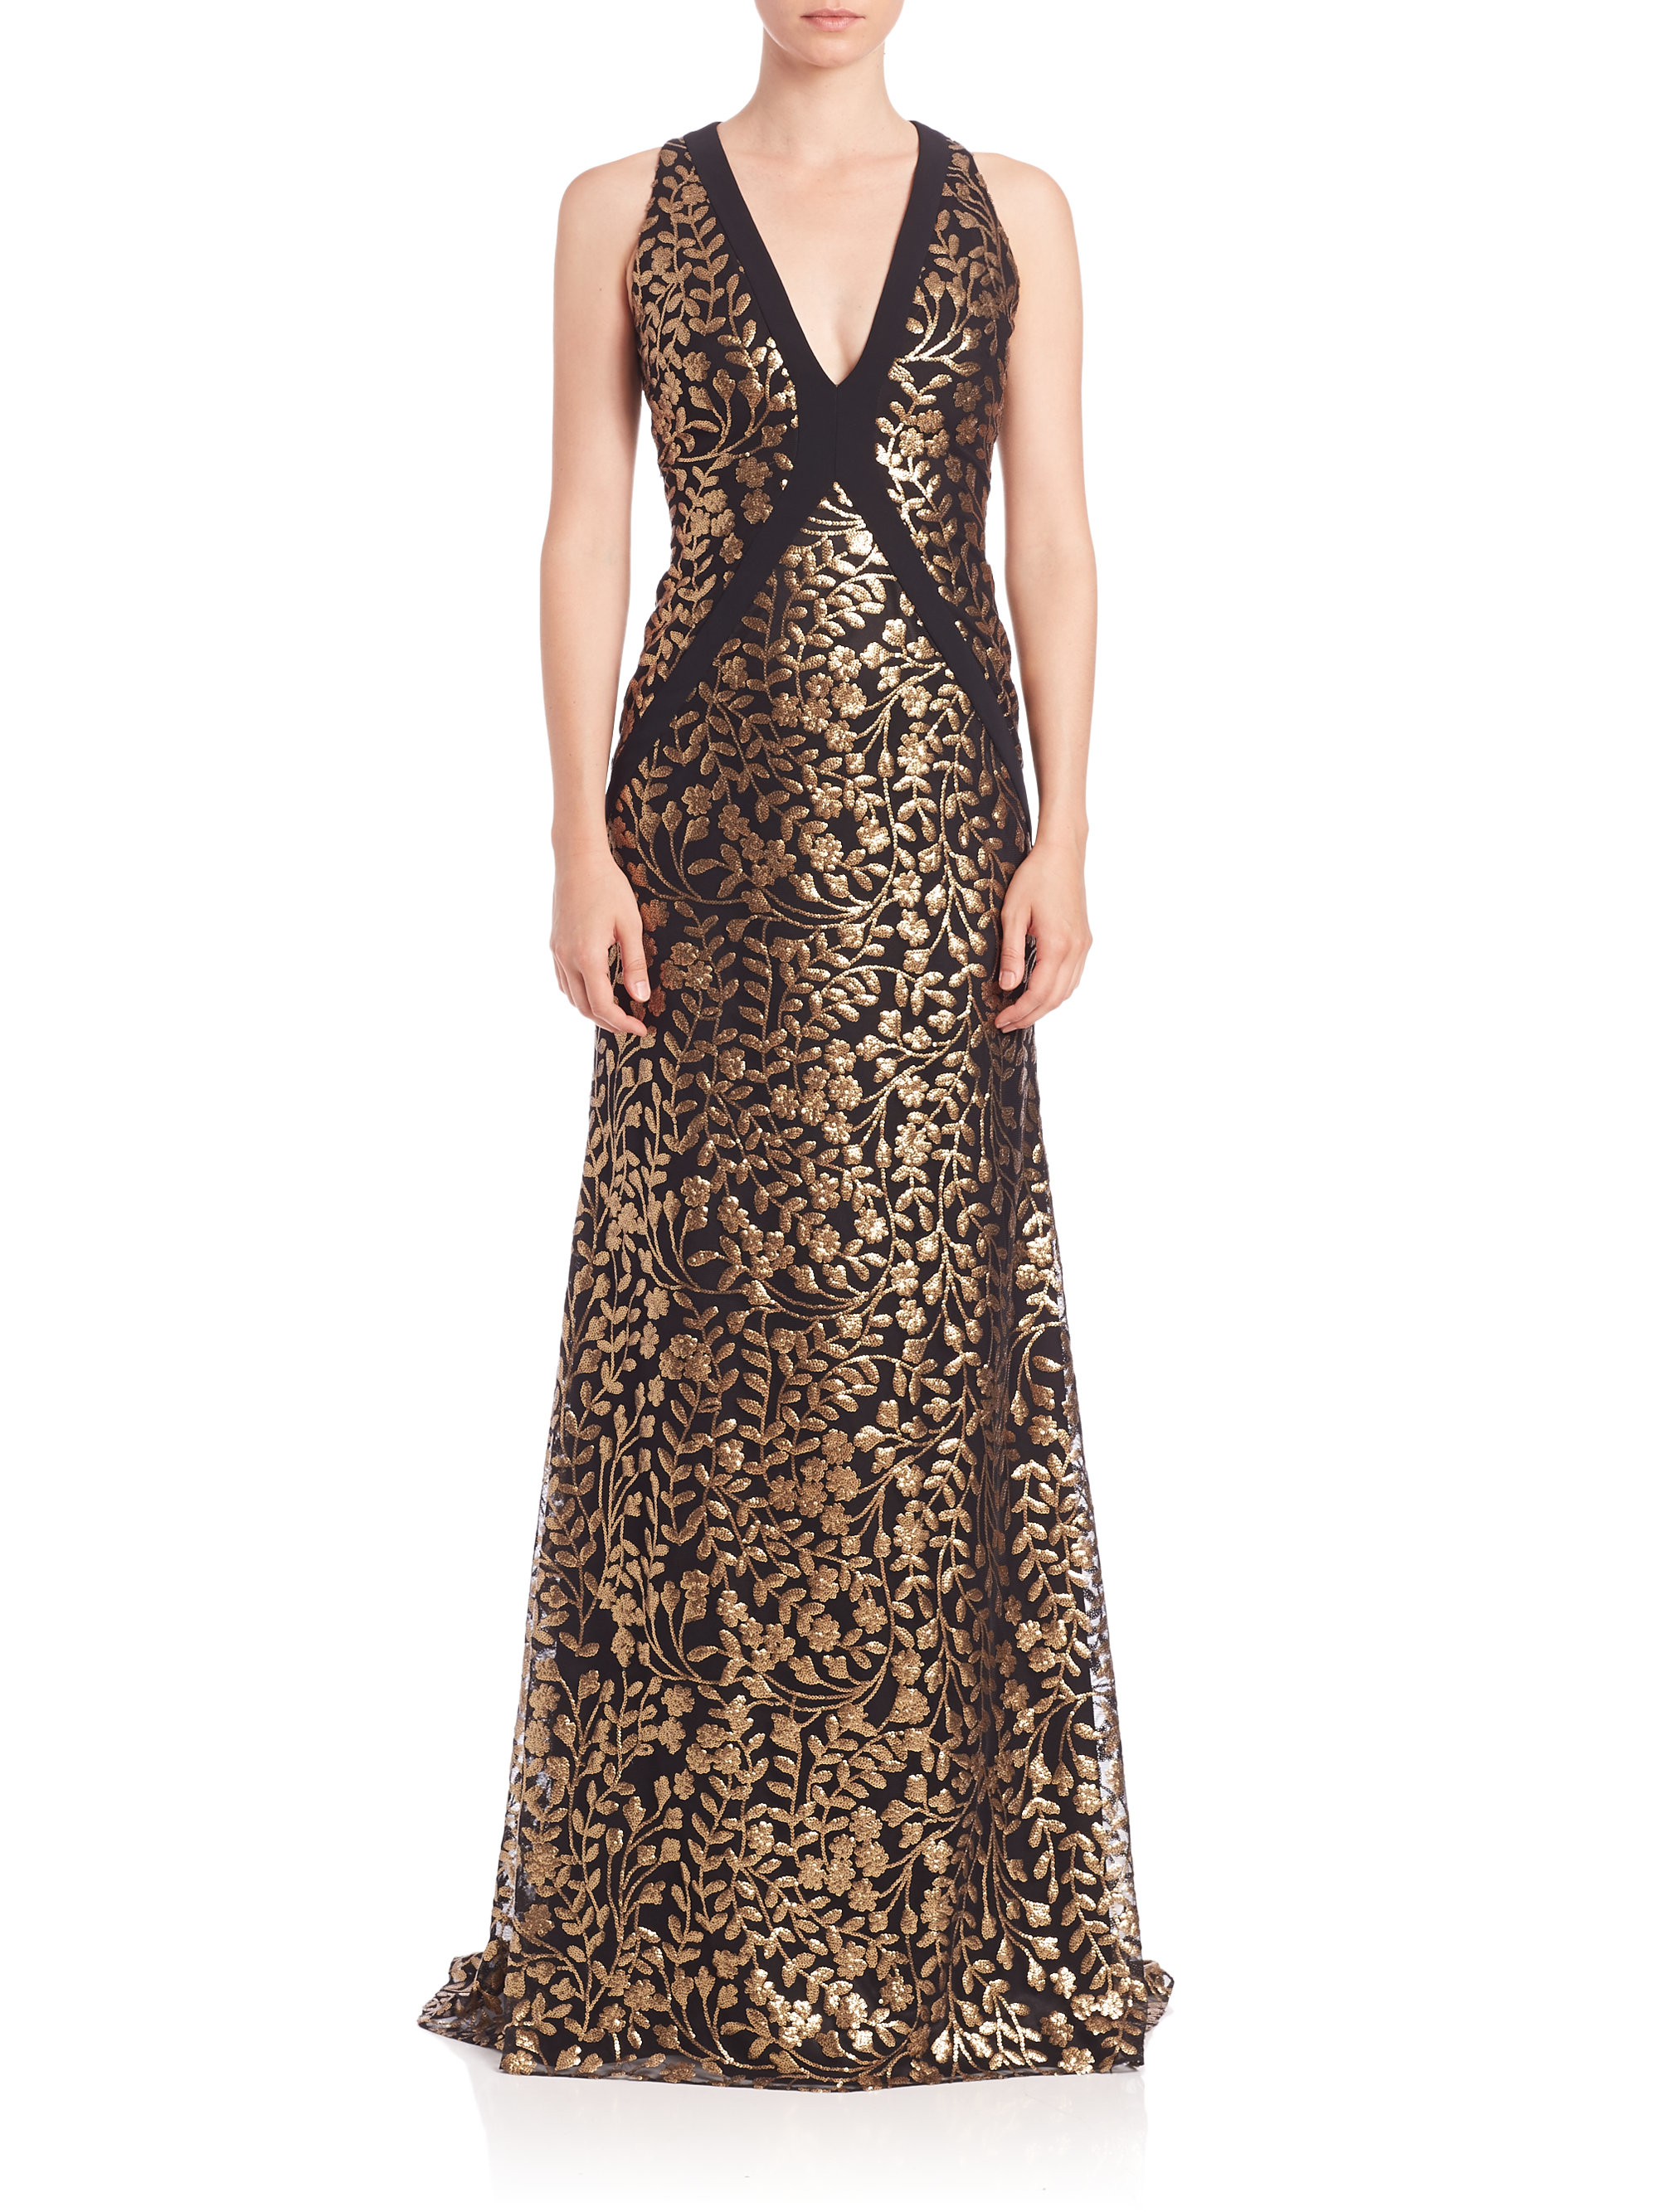 Lyst - Carmen Marc Valvo Embroidered V-neck Gown in Metallic